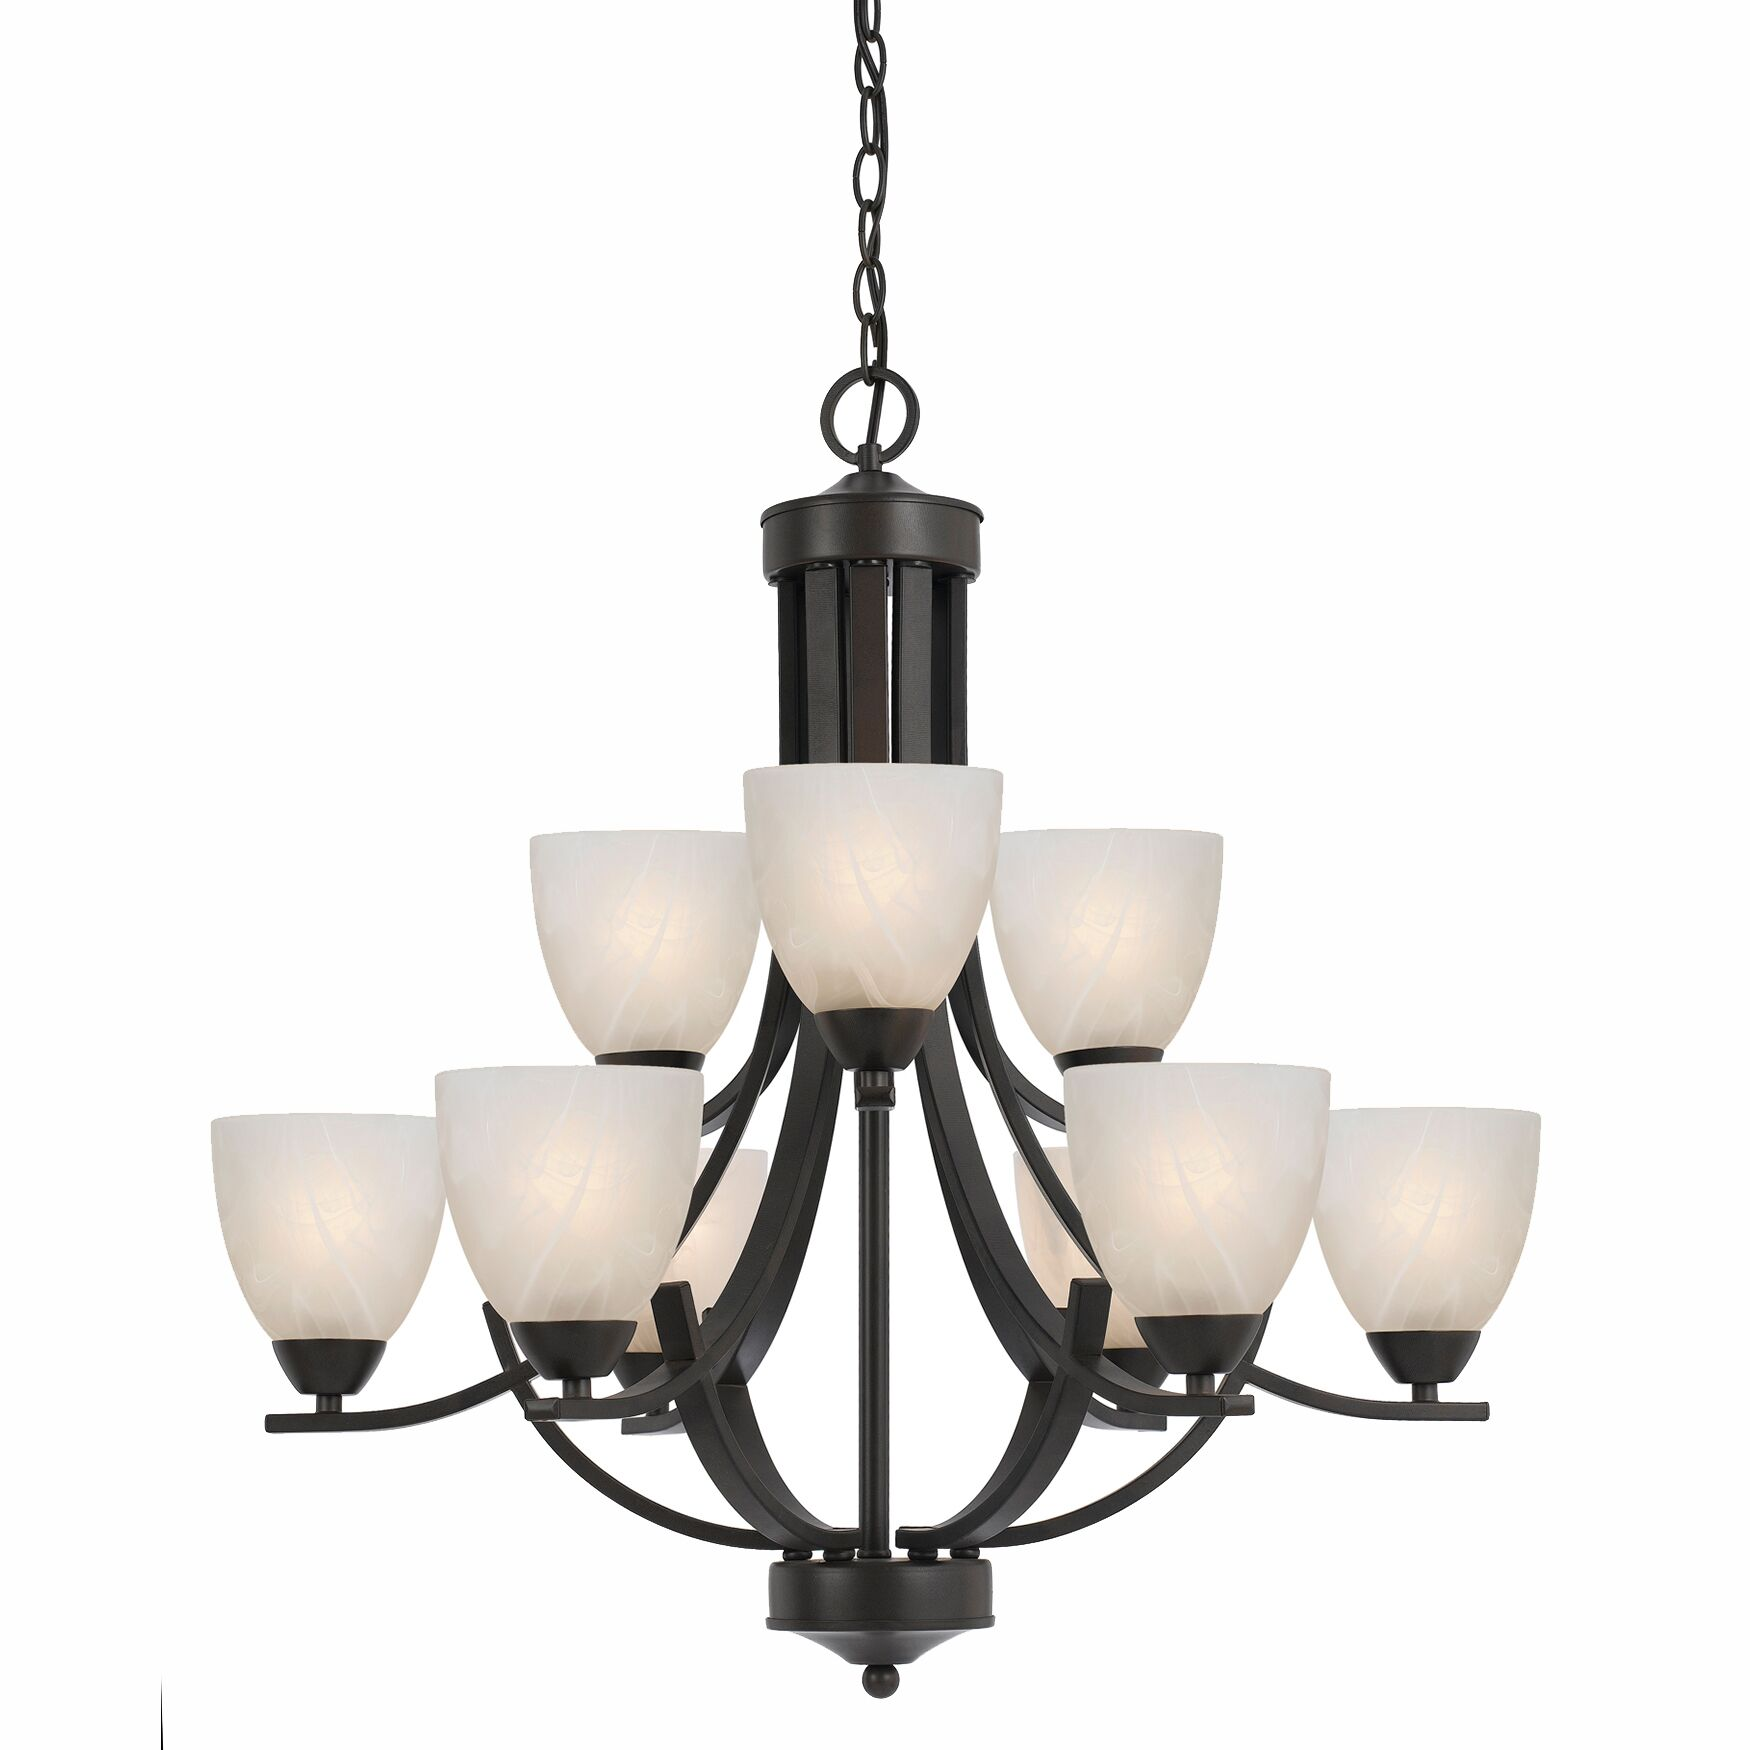 Gorrell 9-Light Shaded Chandelier Base Finish: Bronze, Shade Color: White Alabaster